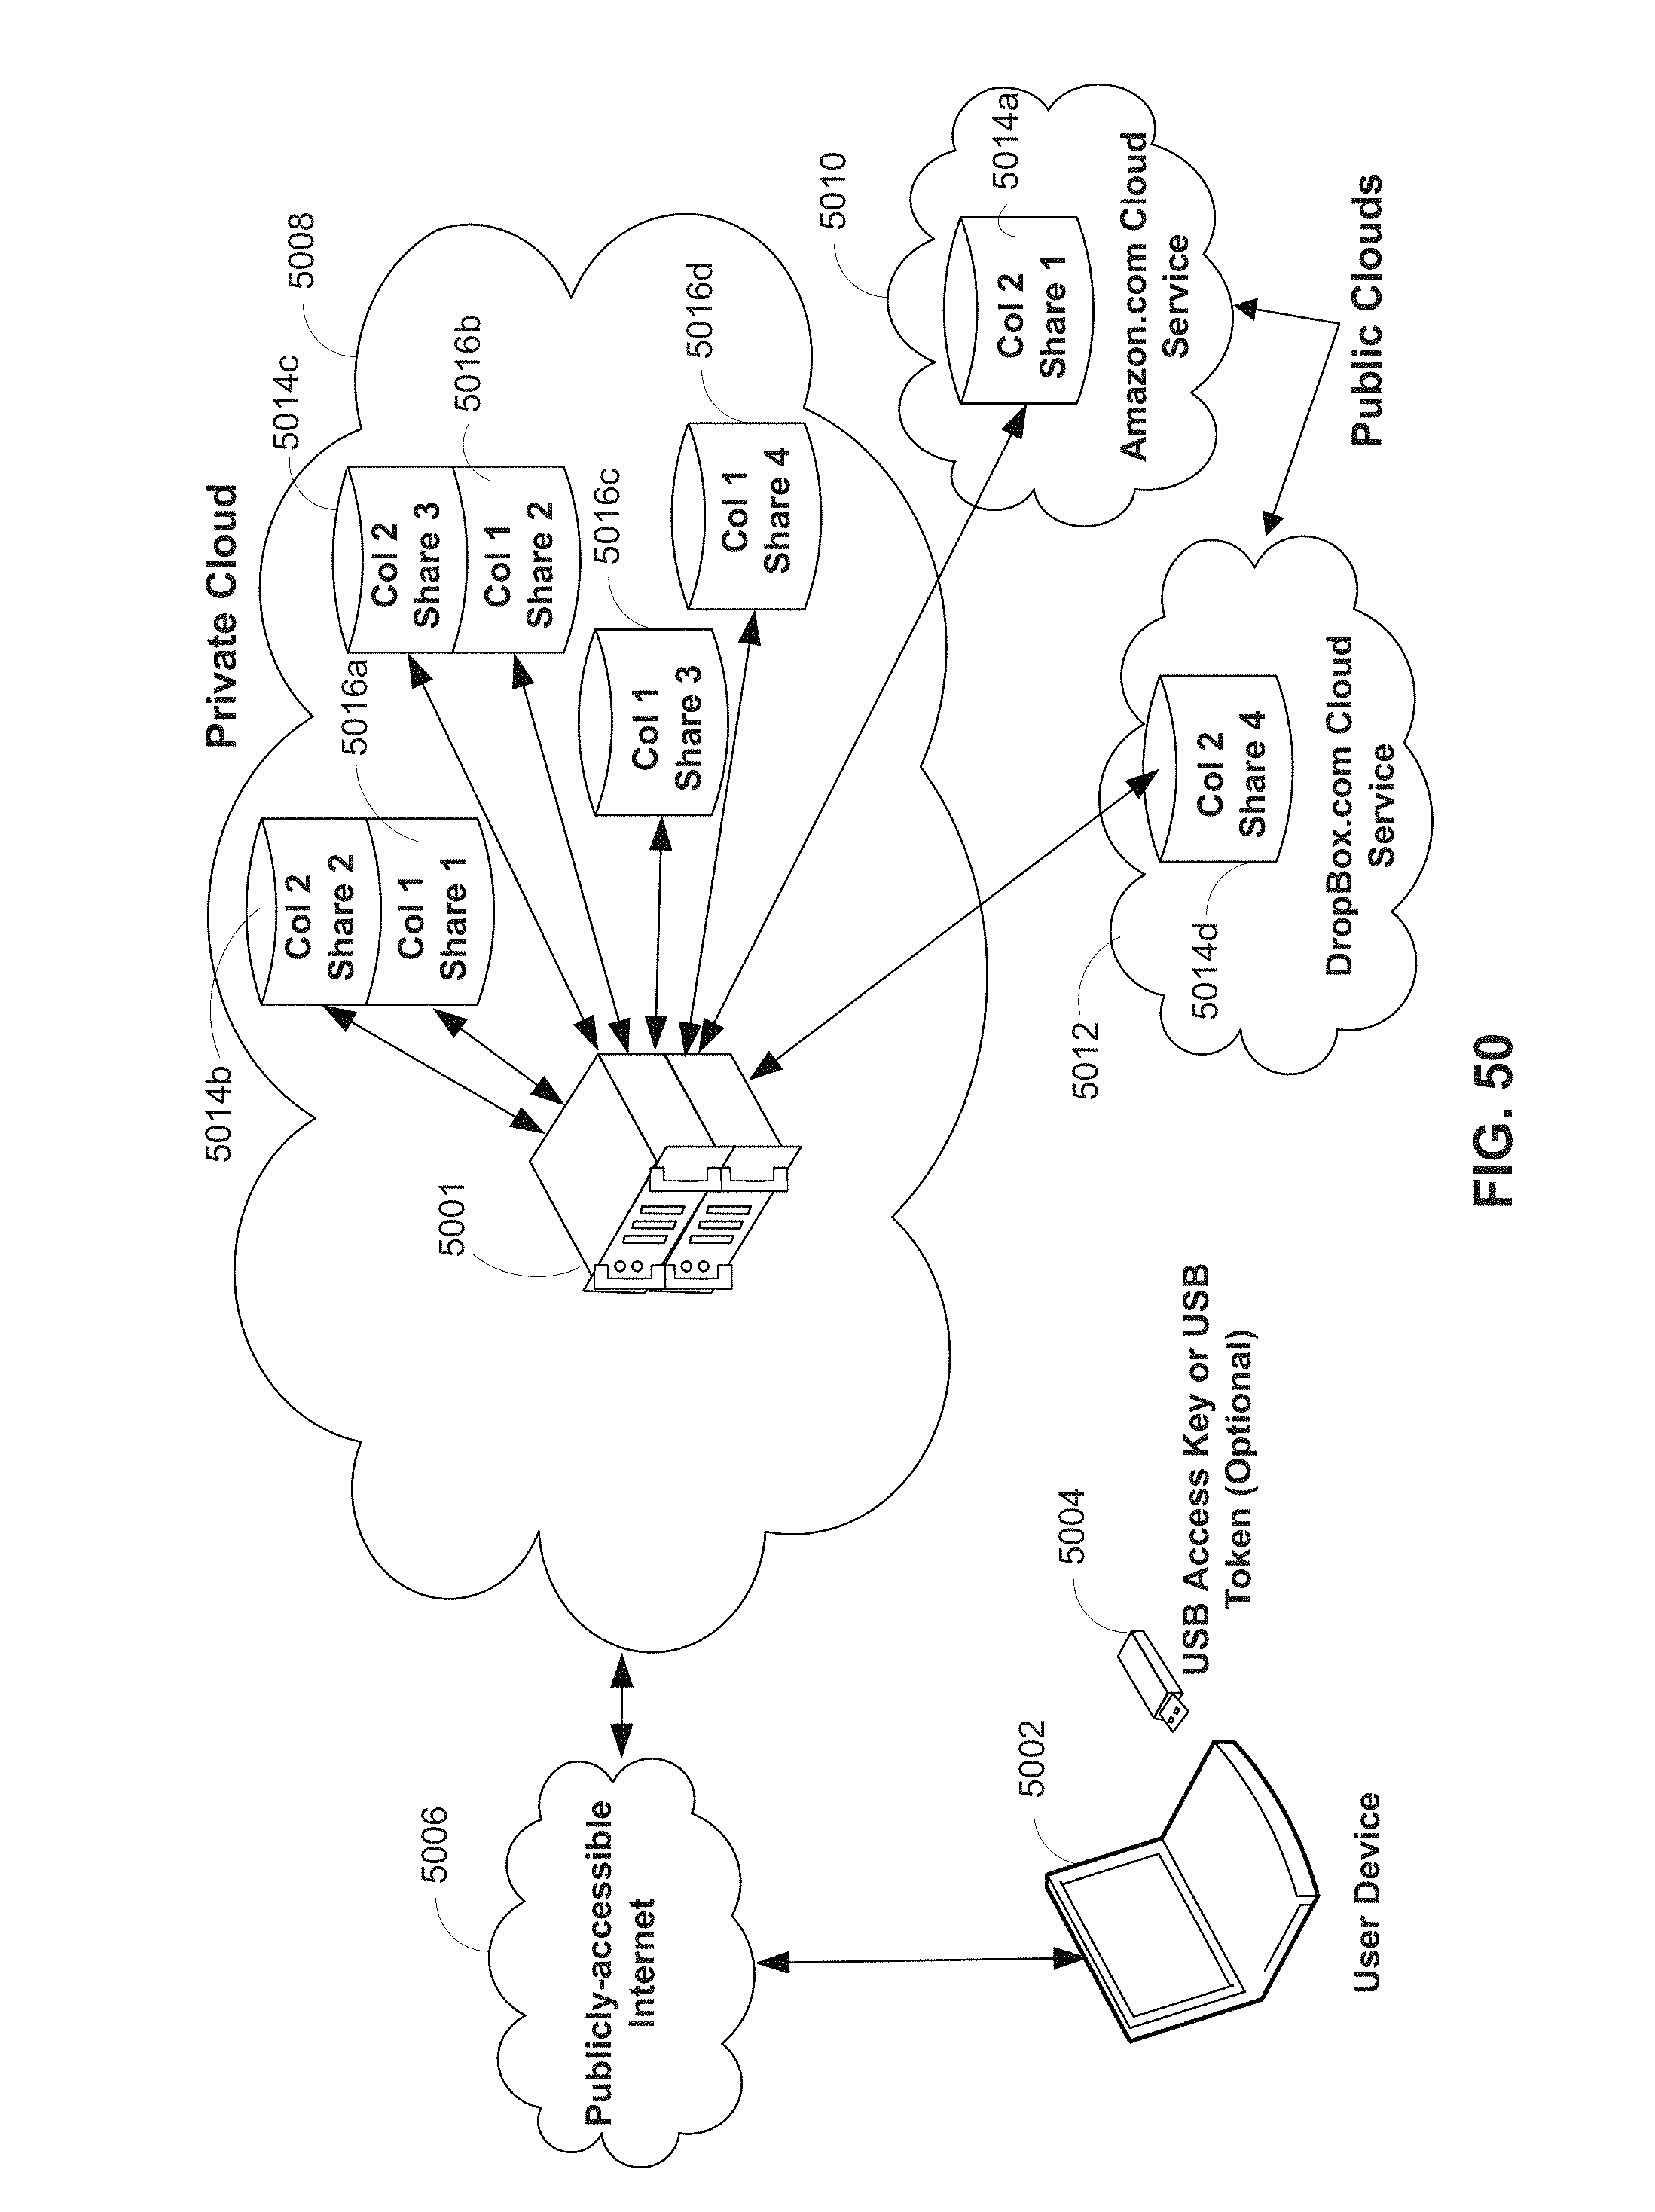 patent us 9 785 785 b2 Bank Teller Experience patent images